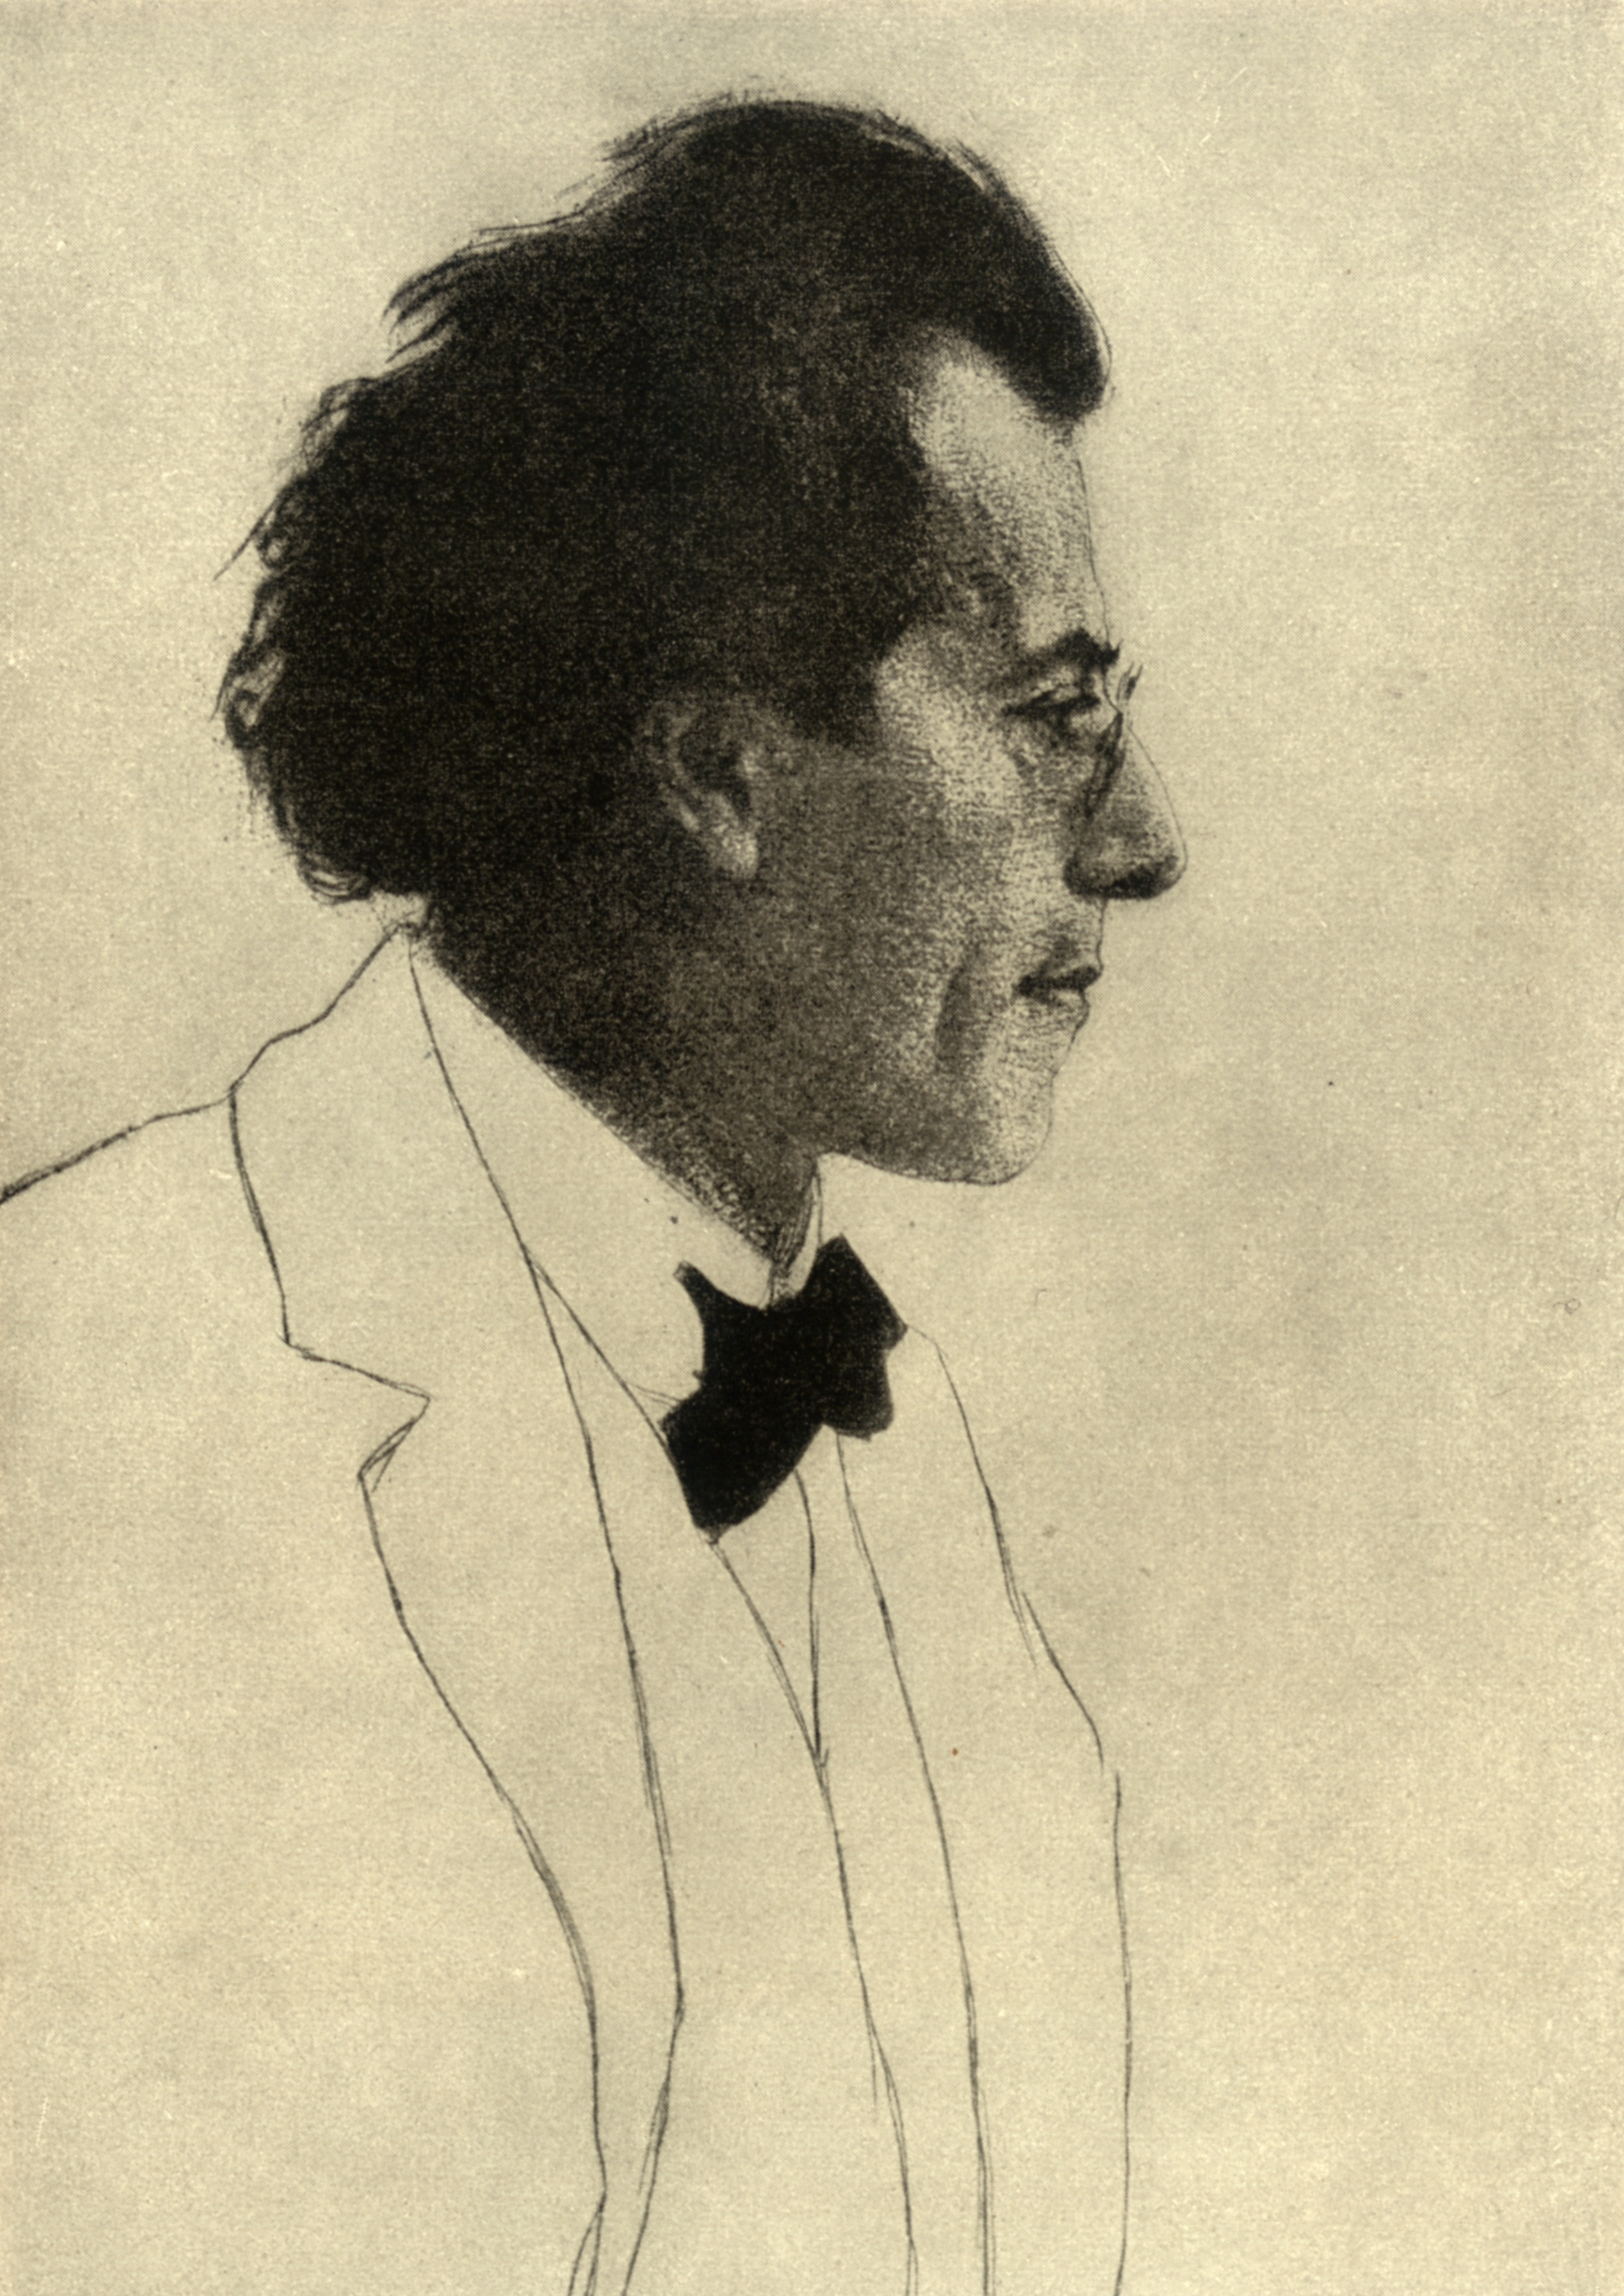 gustav mahler Gustav mahler [jens malte fischer] on amazoncom free shipping on qualifying offers a best seller when first published in germany in 2003, jens malte fischer's gustav mahler has been lauded by scholars as a landmark work.